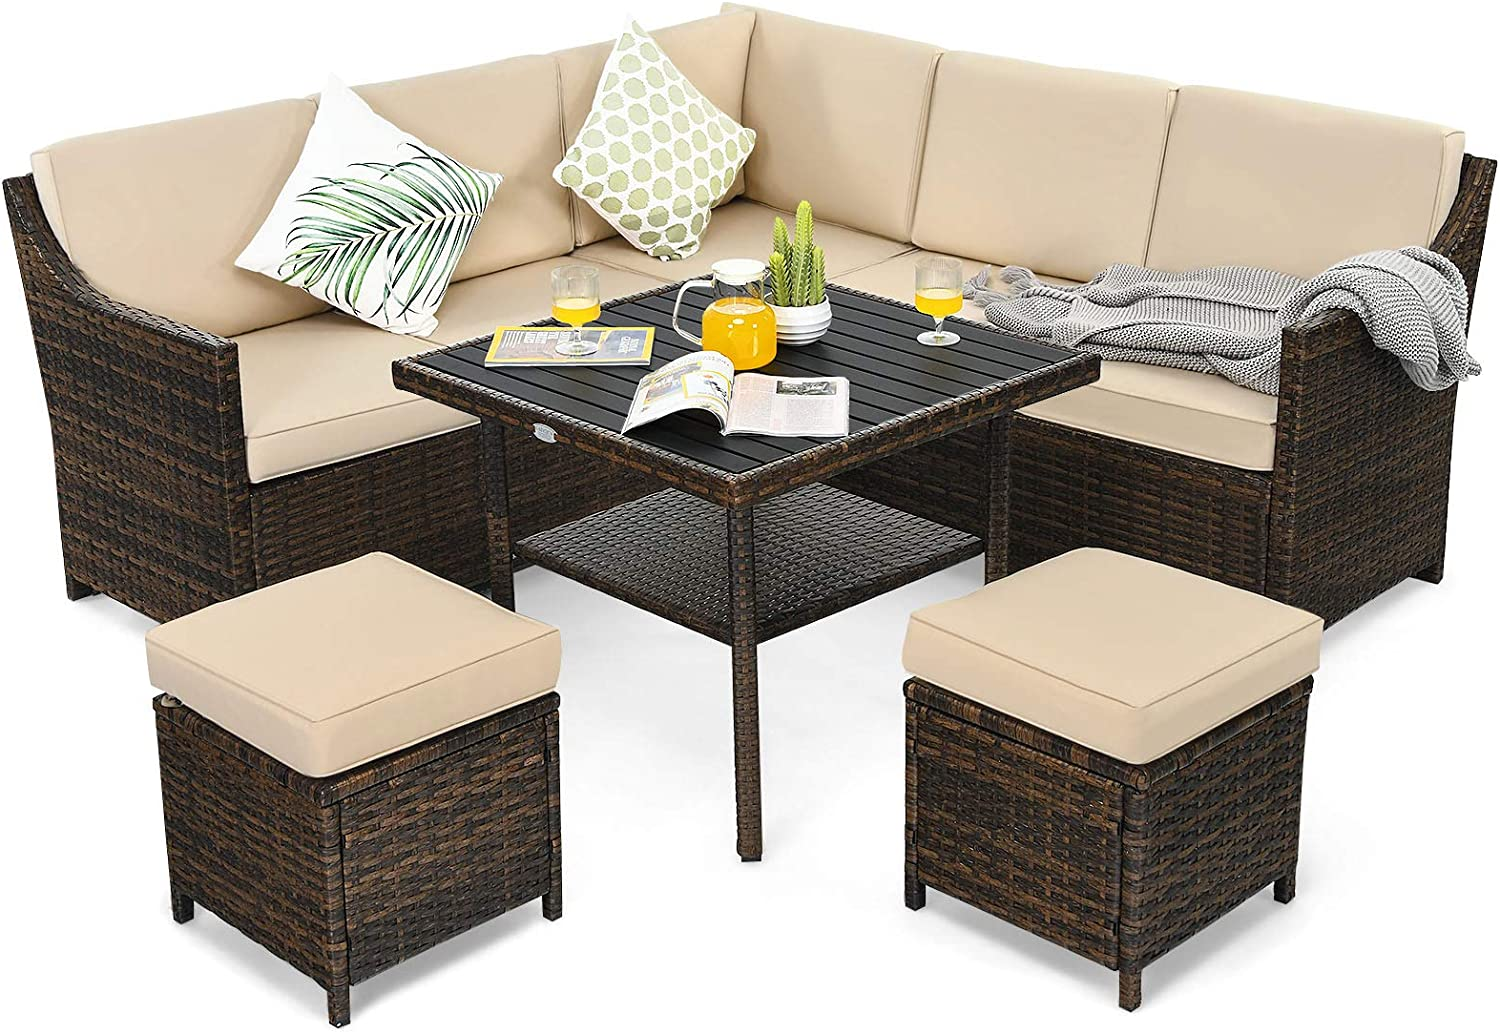 Tangkula Wicker Outdoor Dining Set, 6 Piece PE Rattan Wicker Sectional Corner Sofa Set with Dining Table, 2 Ottomans, Suitable for Garden, Patio, Poolside, Lawn and Balcony, Patio Furniture Set